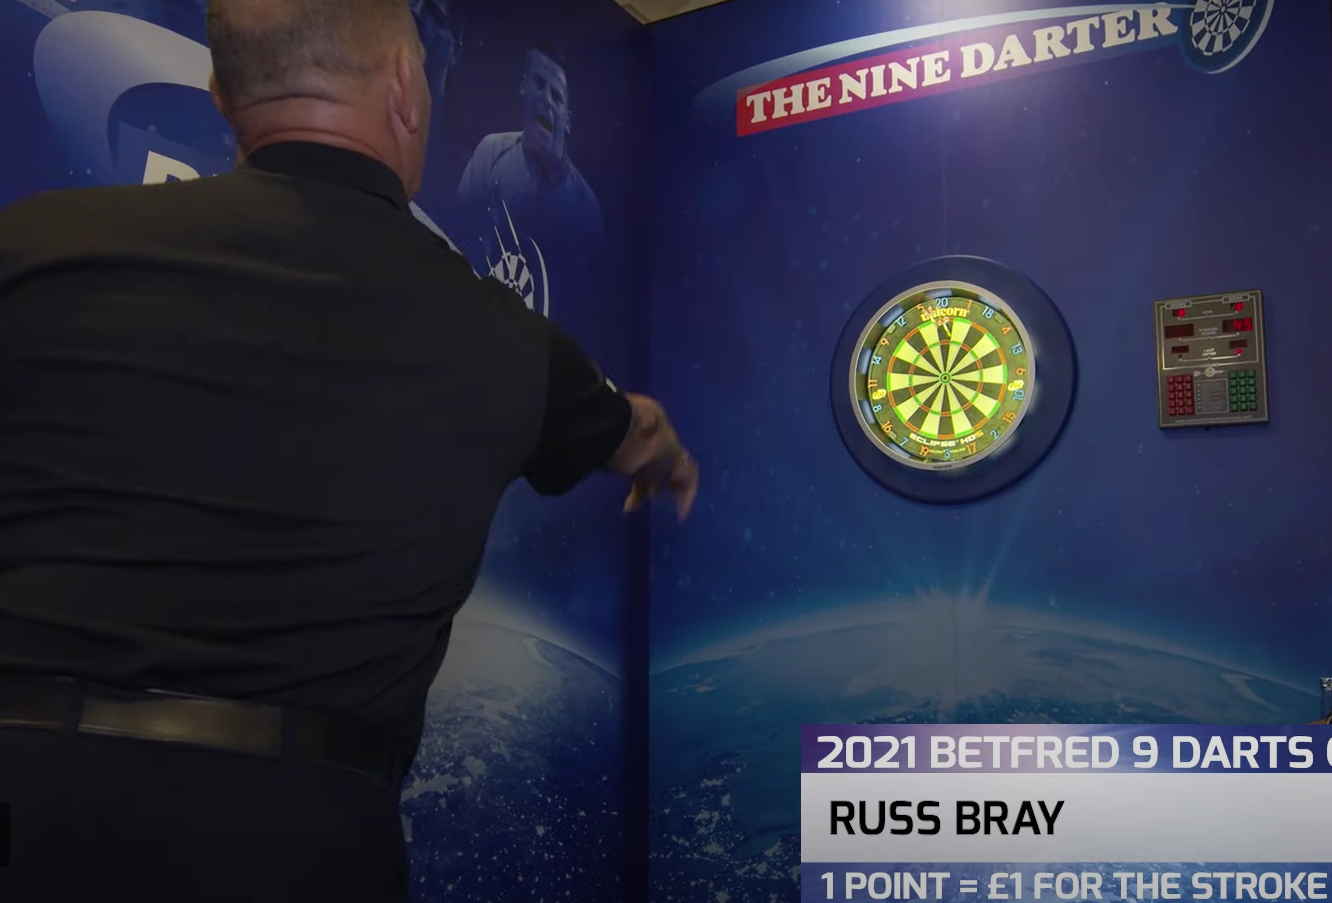 VIDEO: The PDC Referees Take On The 9 Darts Challange